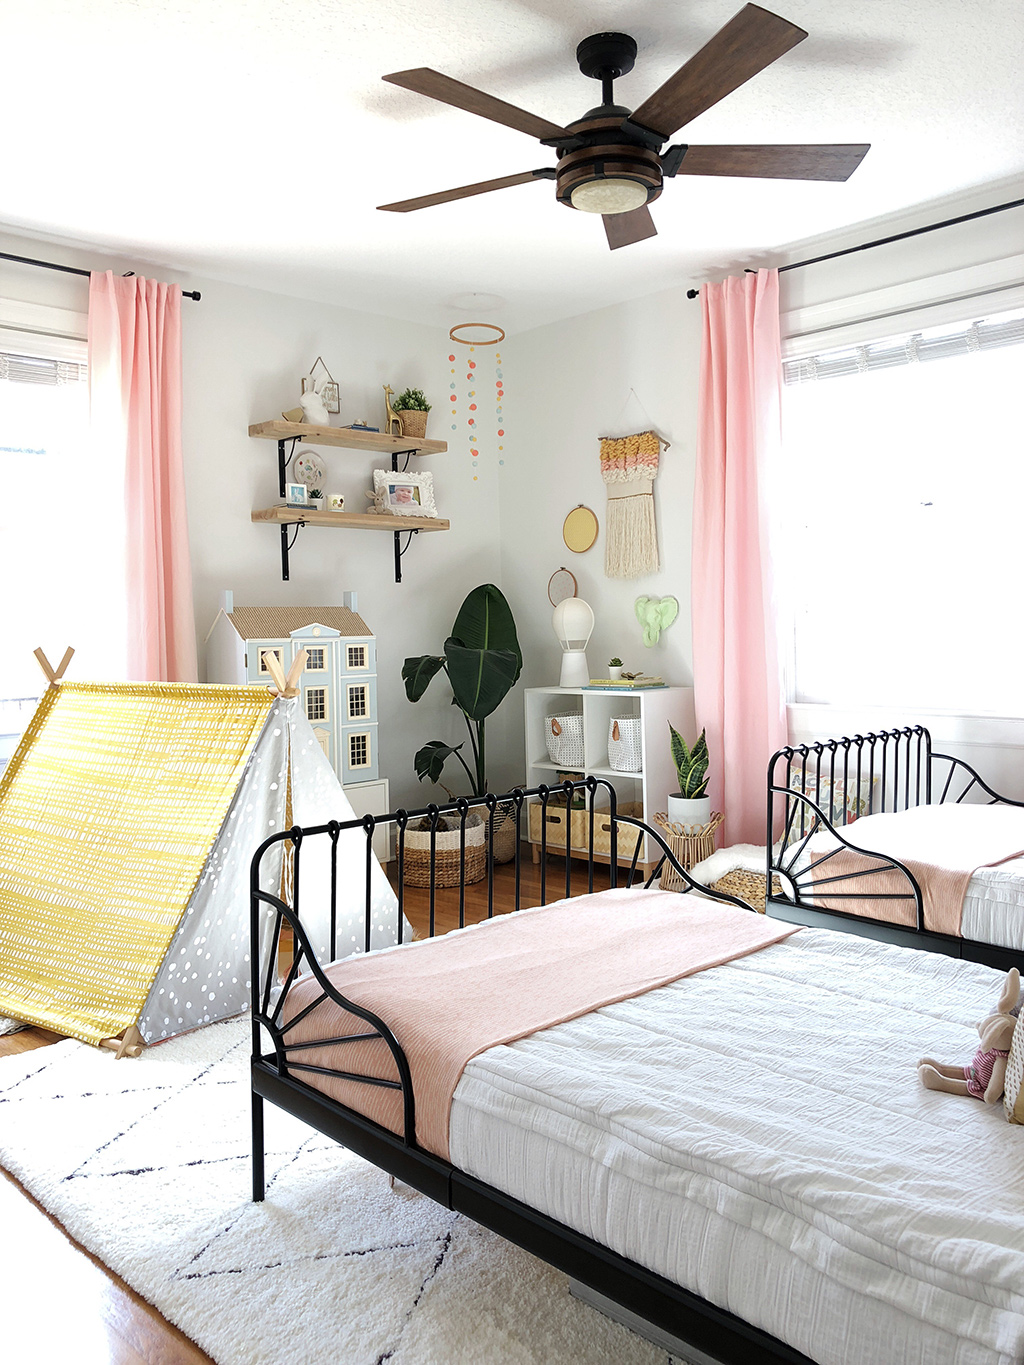 shared girls' bedroom with twin beds